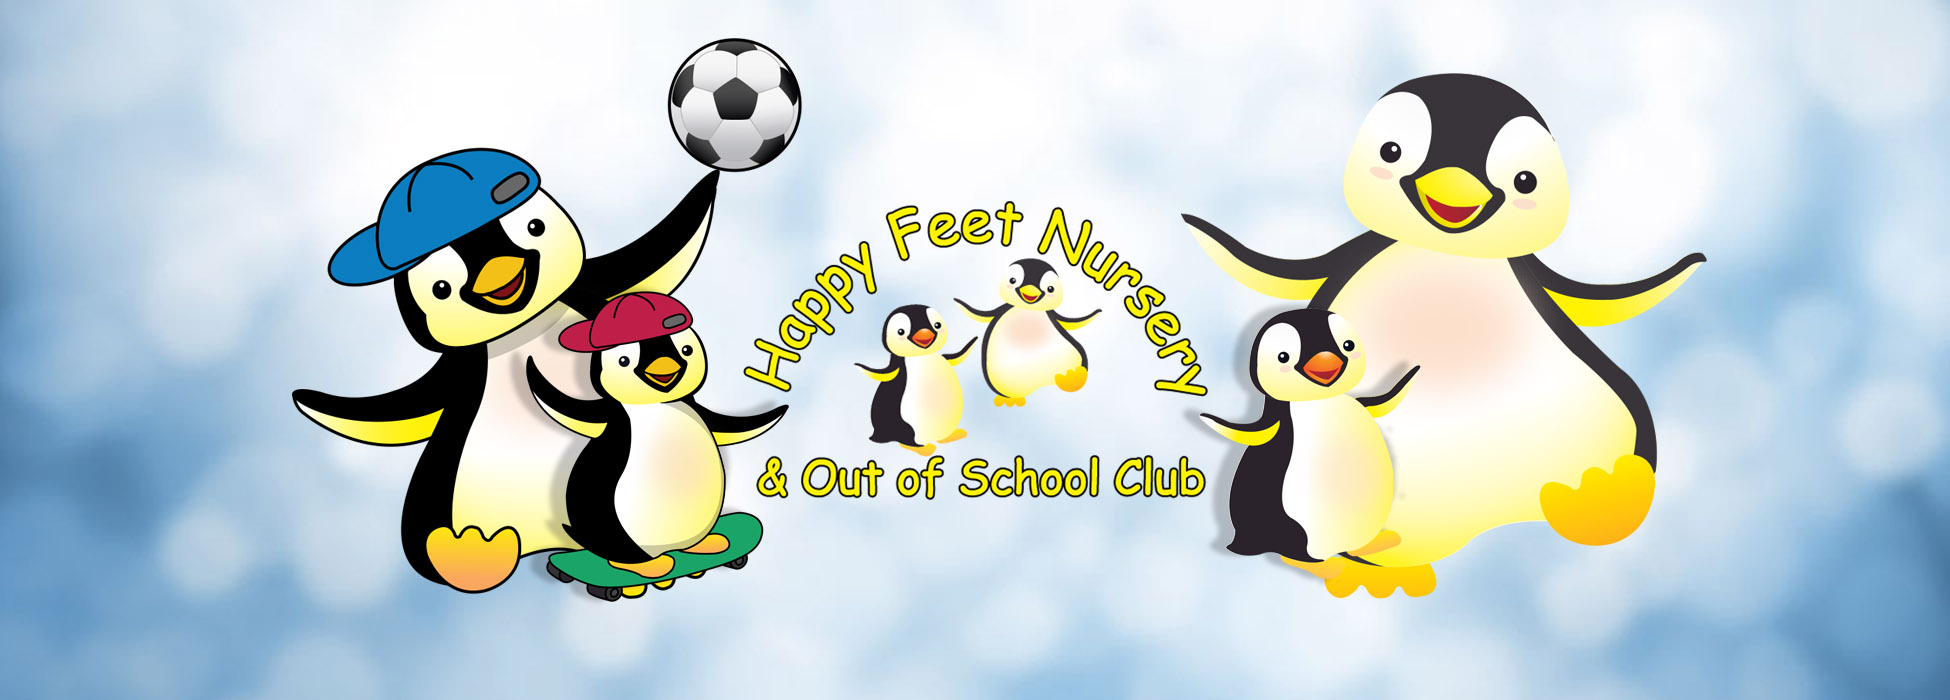 Happy Feet Nursery School and Out of School Club Logo for the blog page